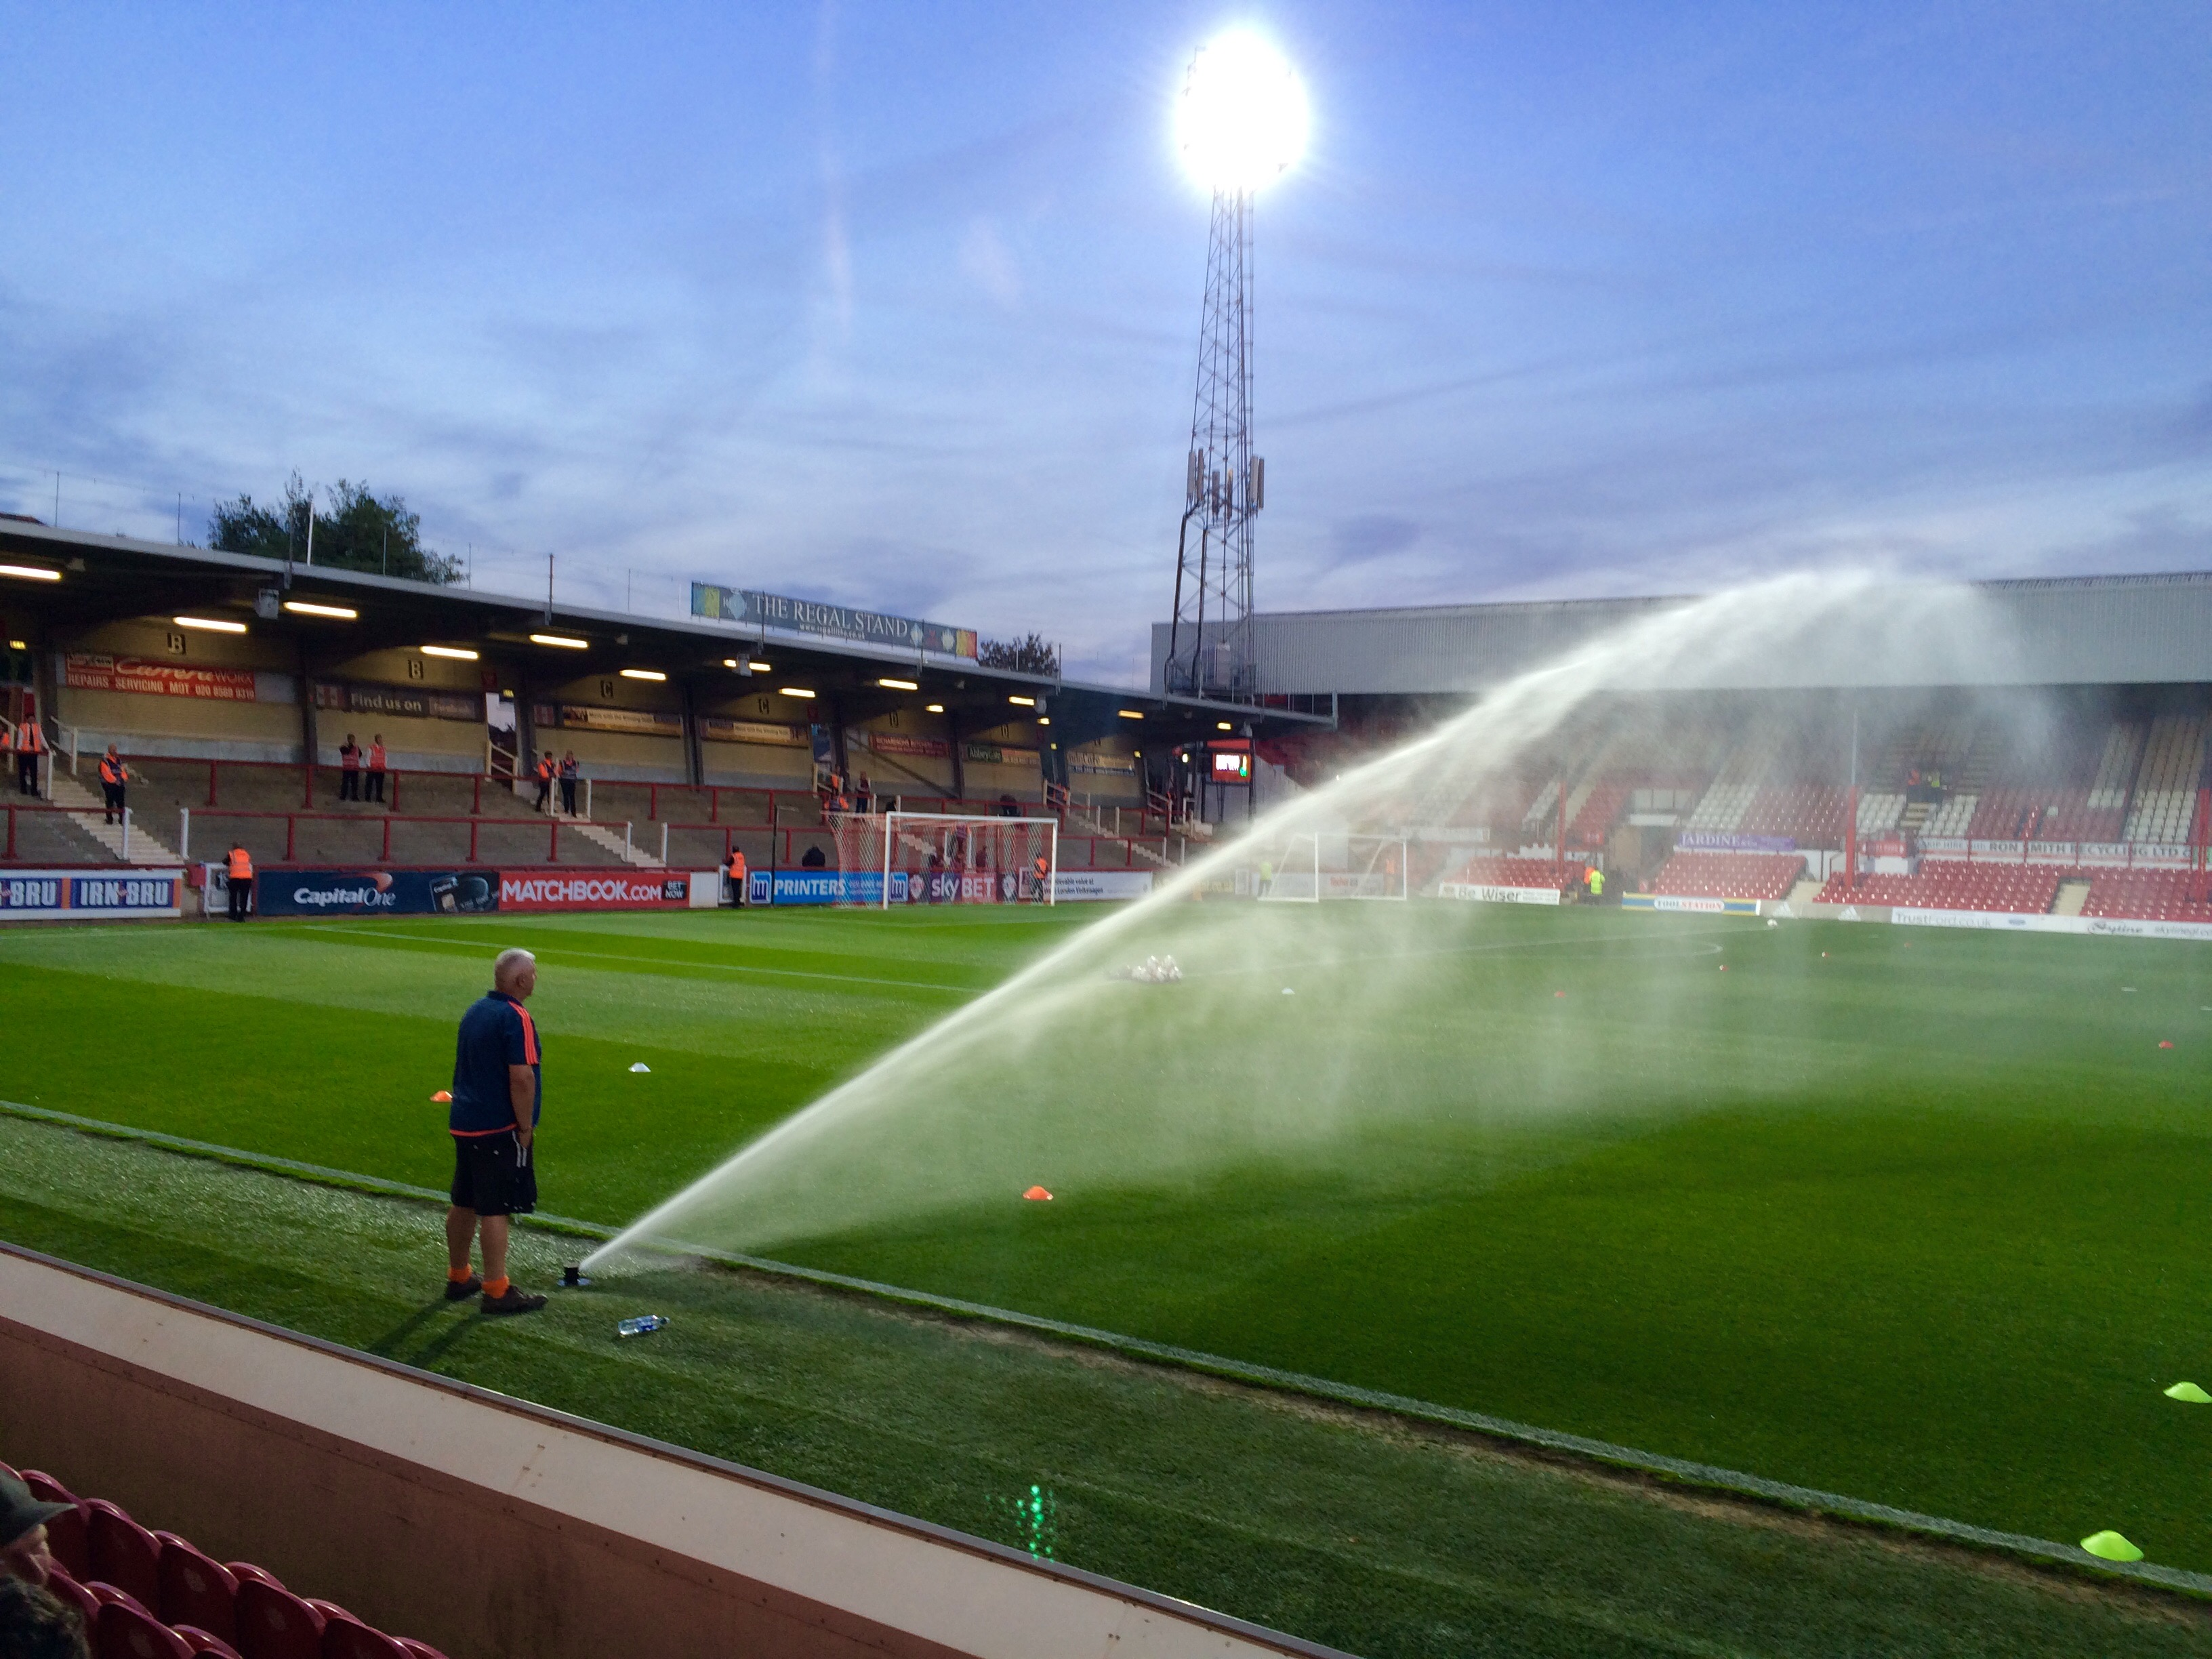 Putting out the fires at Griffin Park?